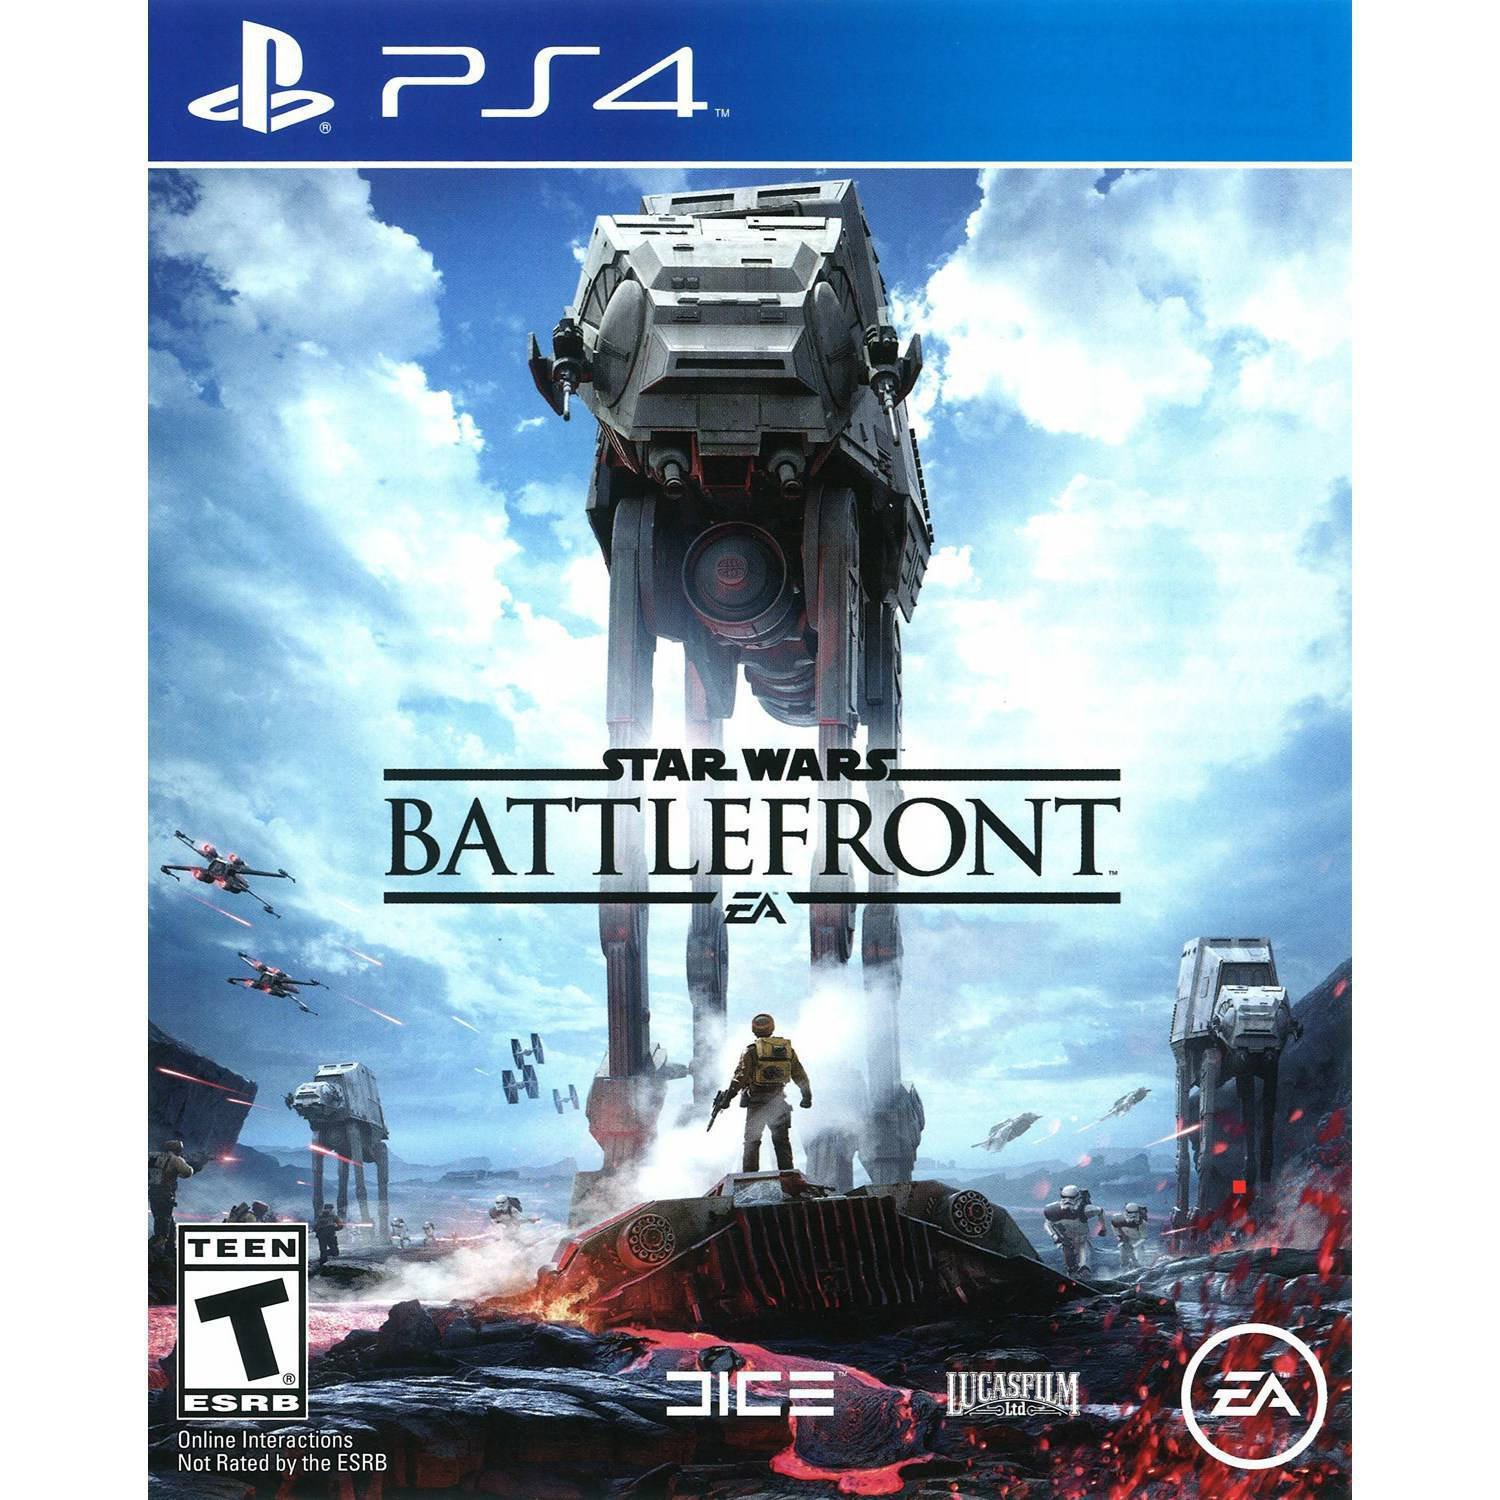 Star Wars Battlefront (PS4) - Pre-Owned